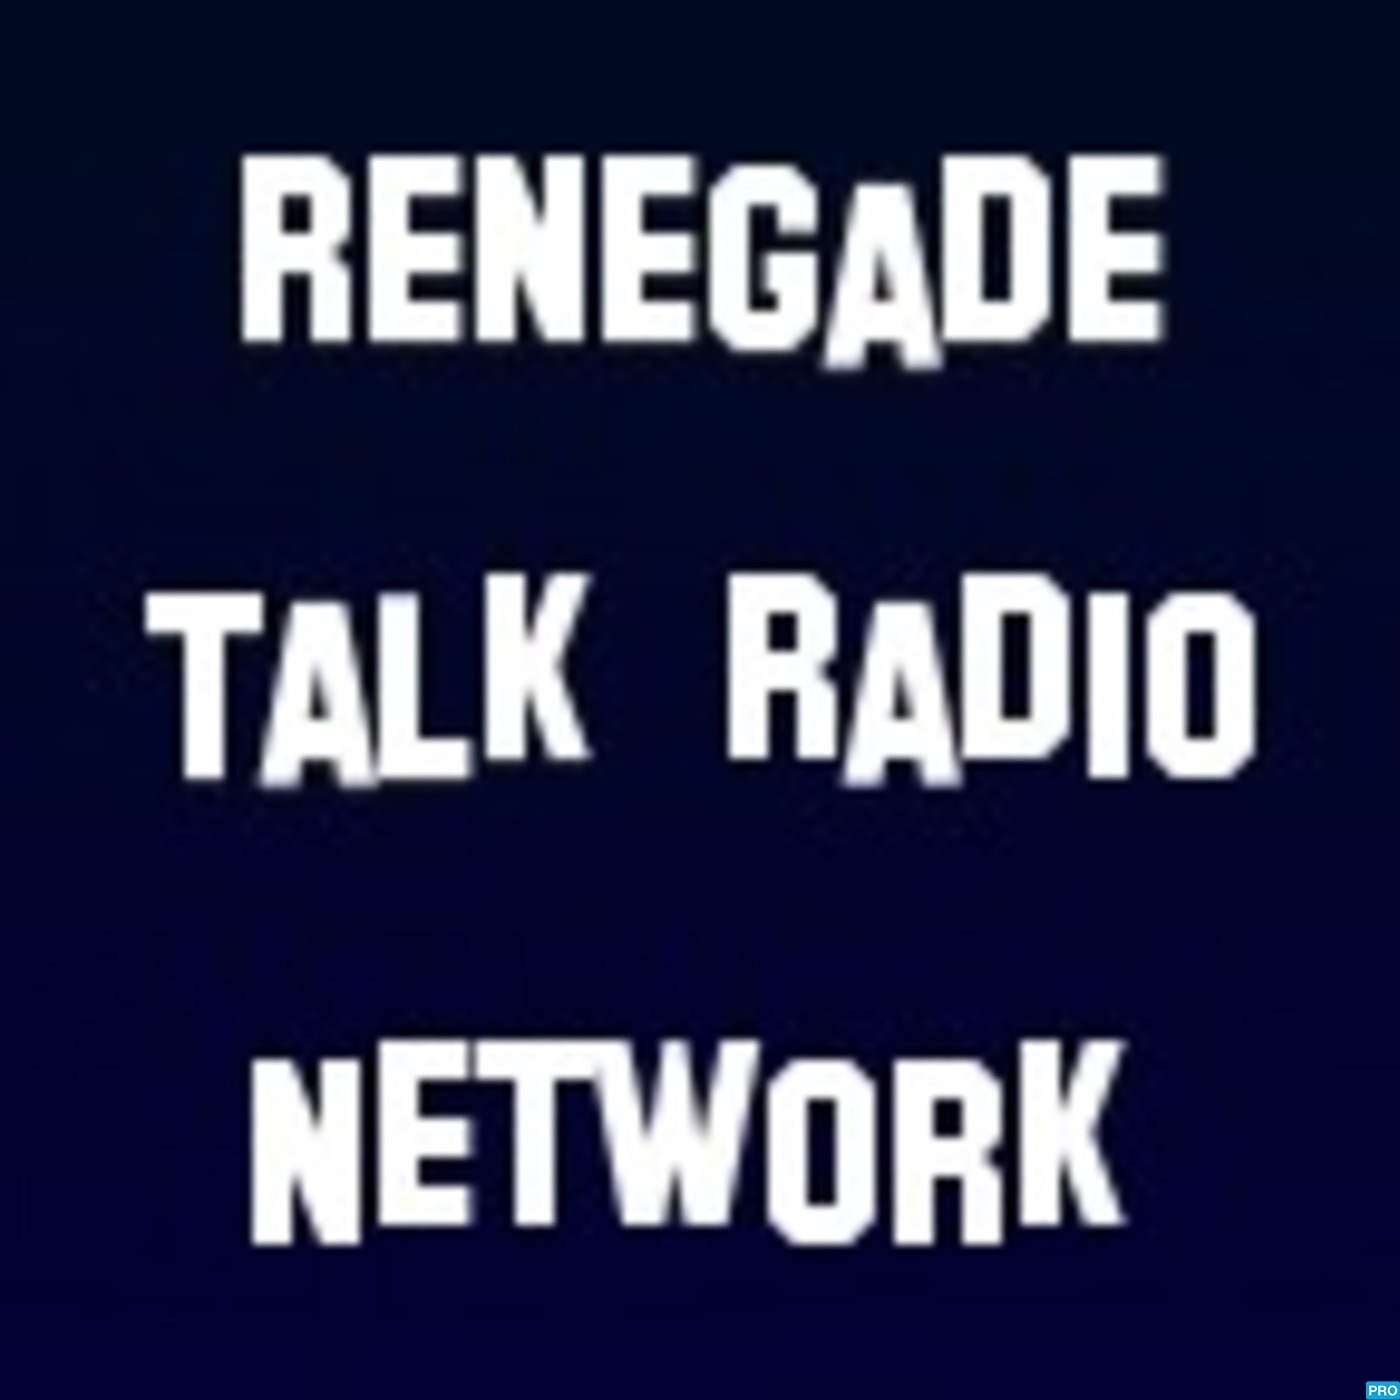 Renegade Talk Radio